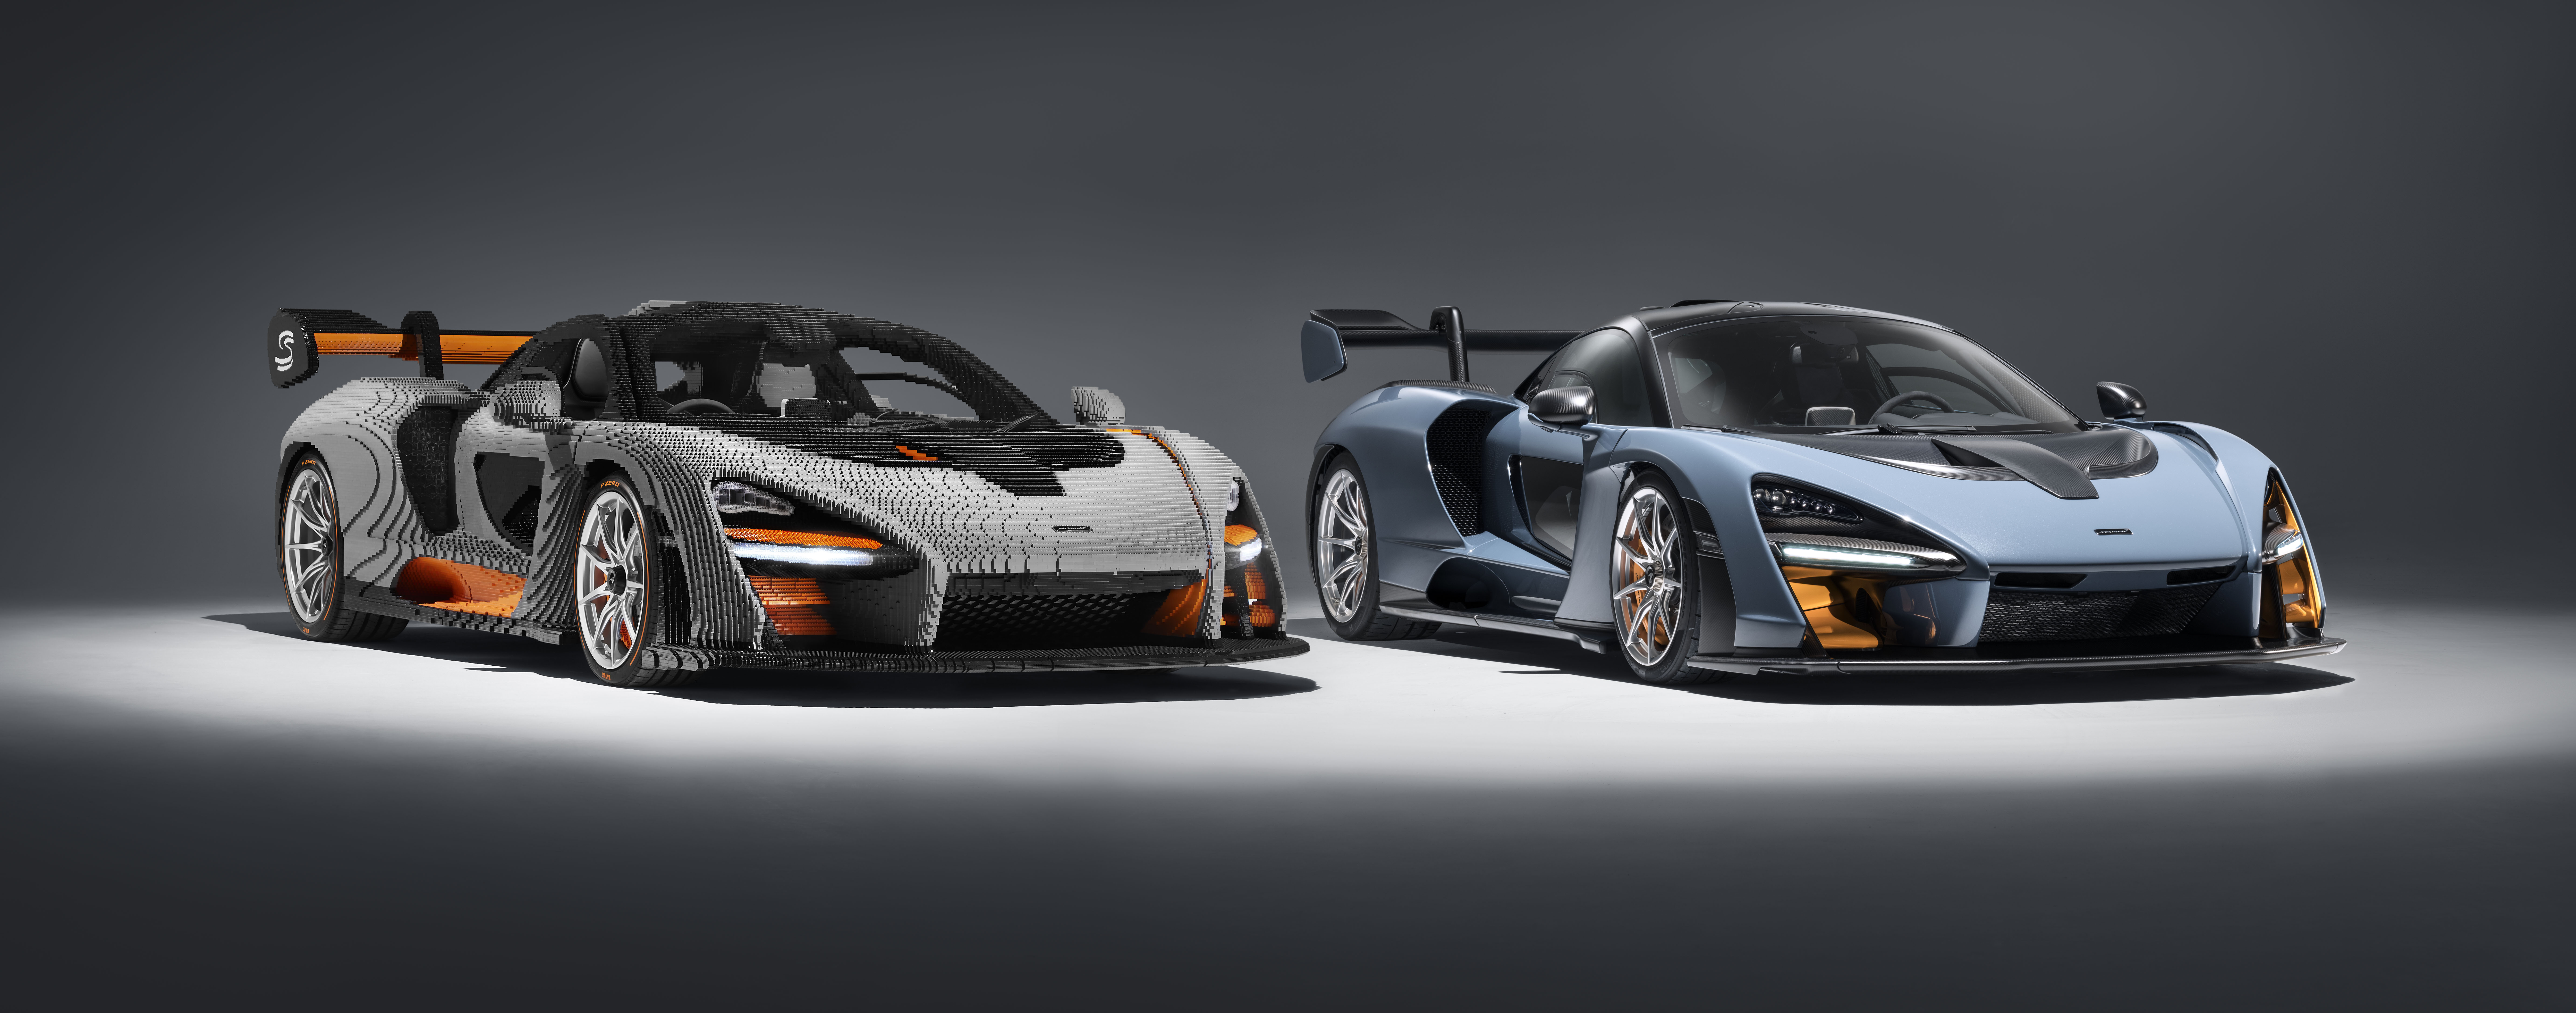 Lego Follows up Full-size Chiron, 720S with McLaren Senna – WHEELS ca